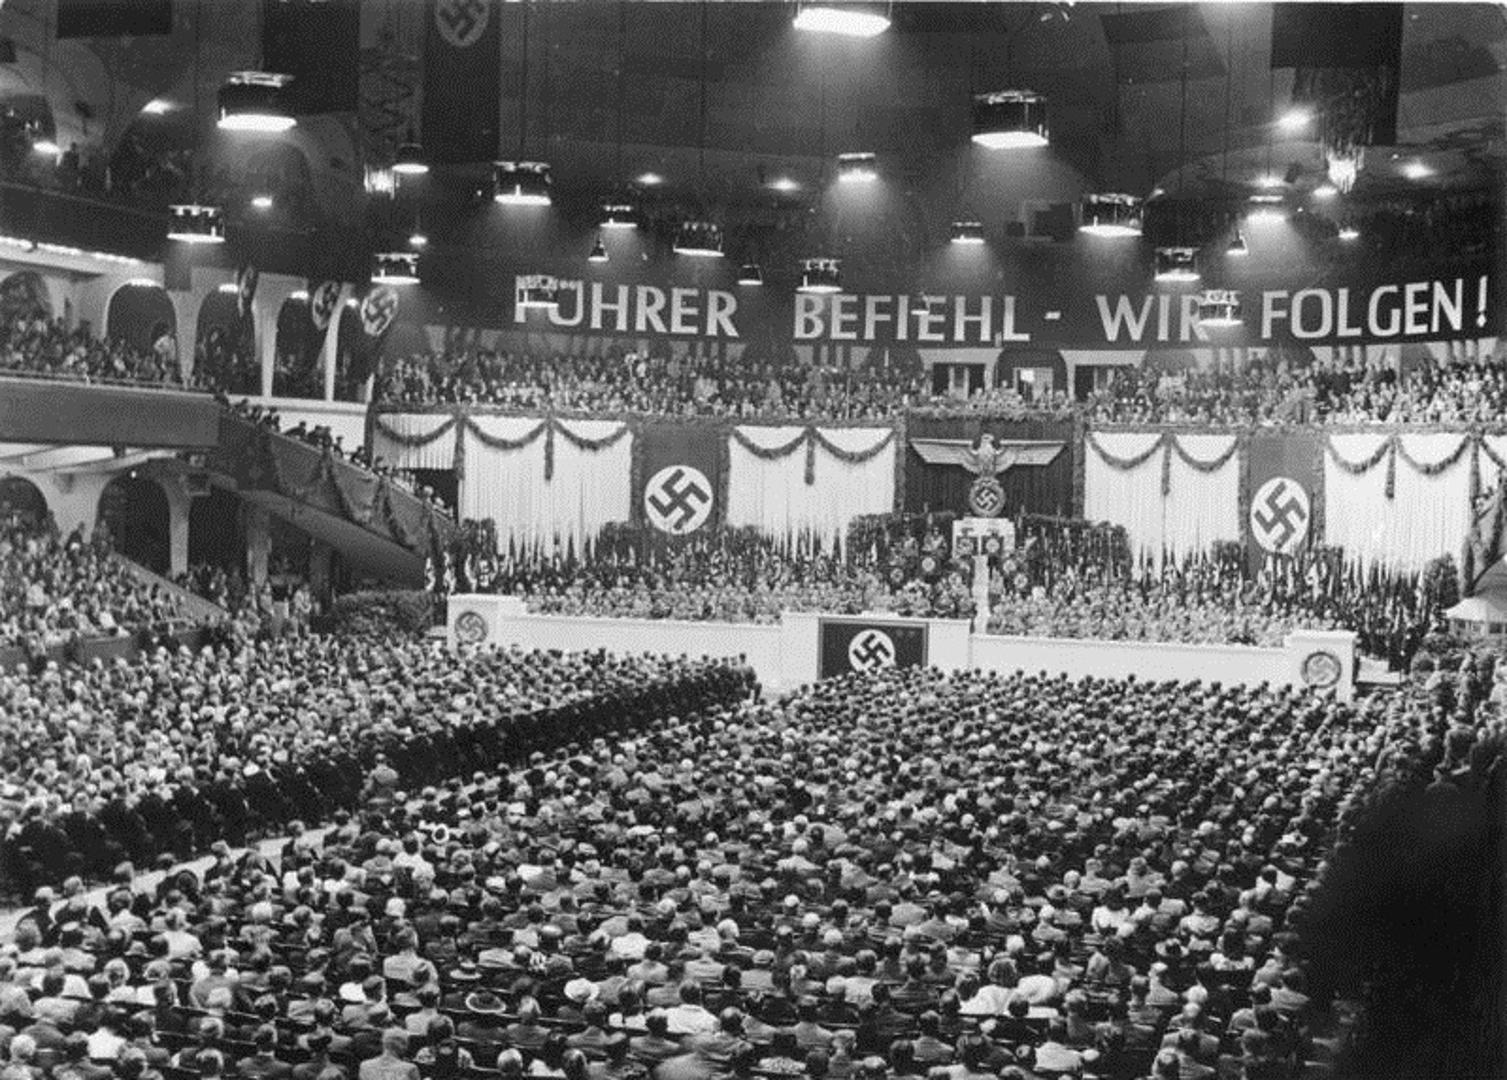 Rally at the Berliner Sportpalast 5 6 1943